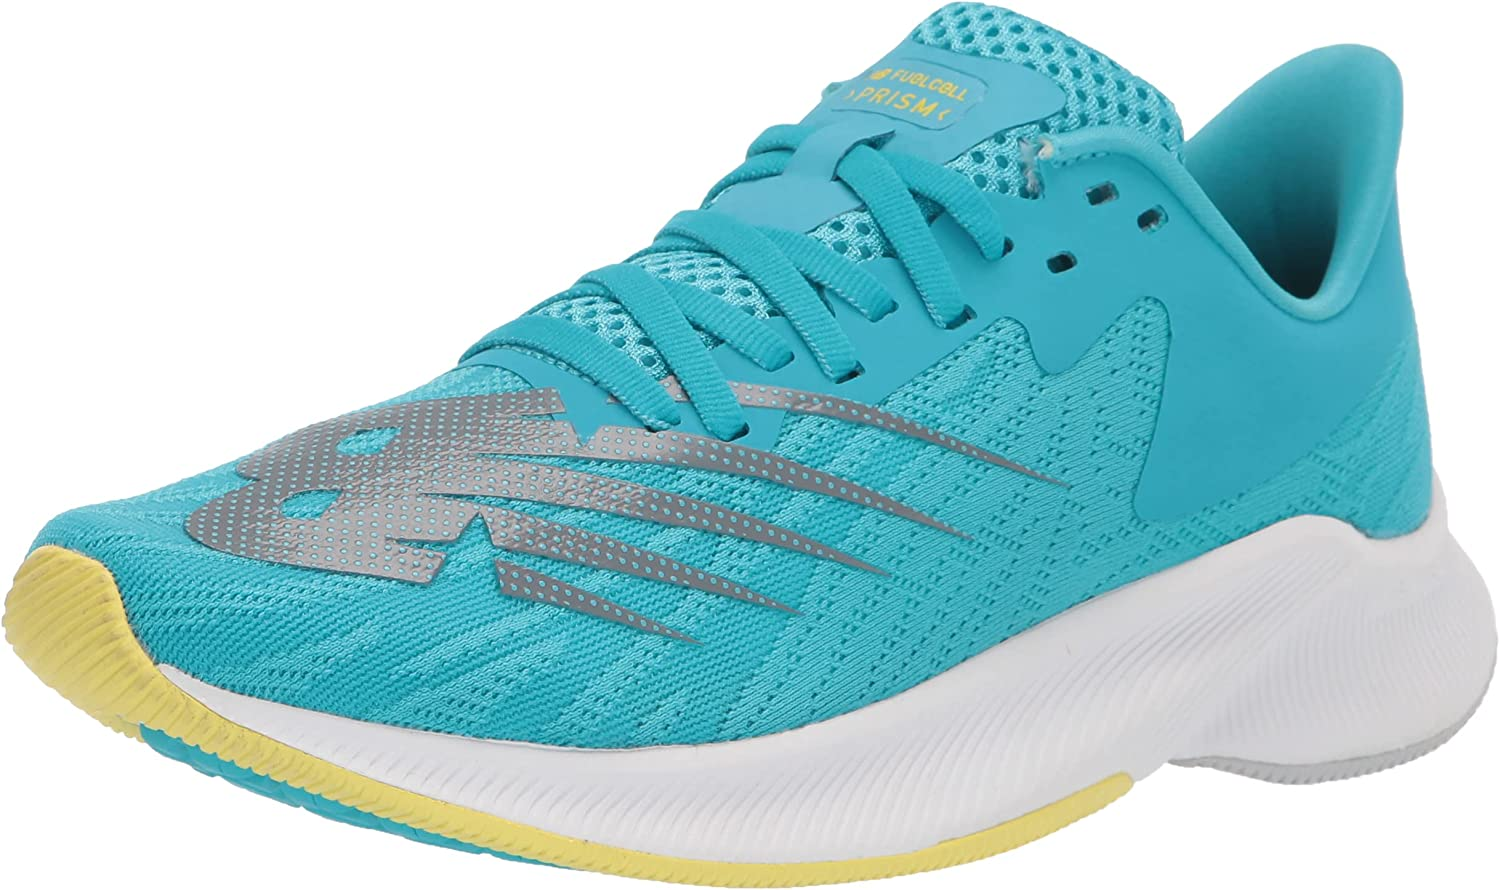 New Balance lowest price mart Women's FuelCell Running Shoe Prism V1